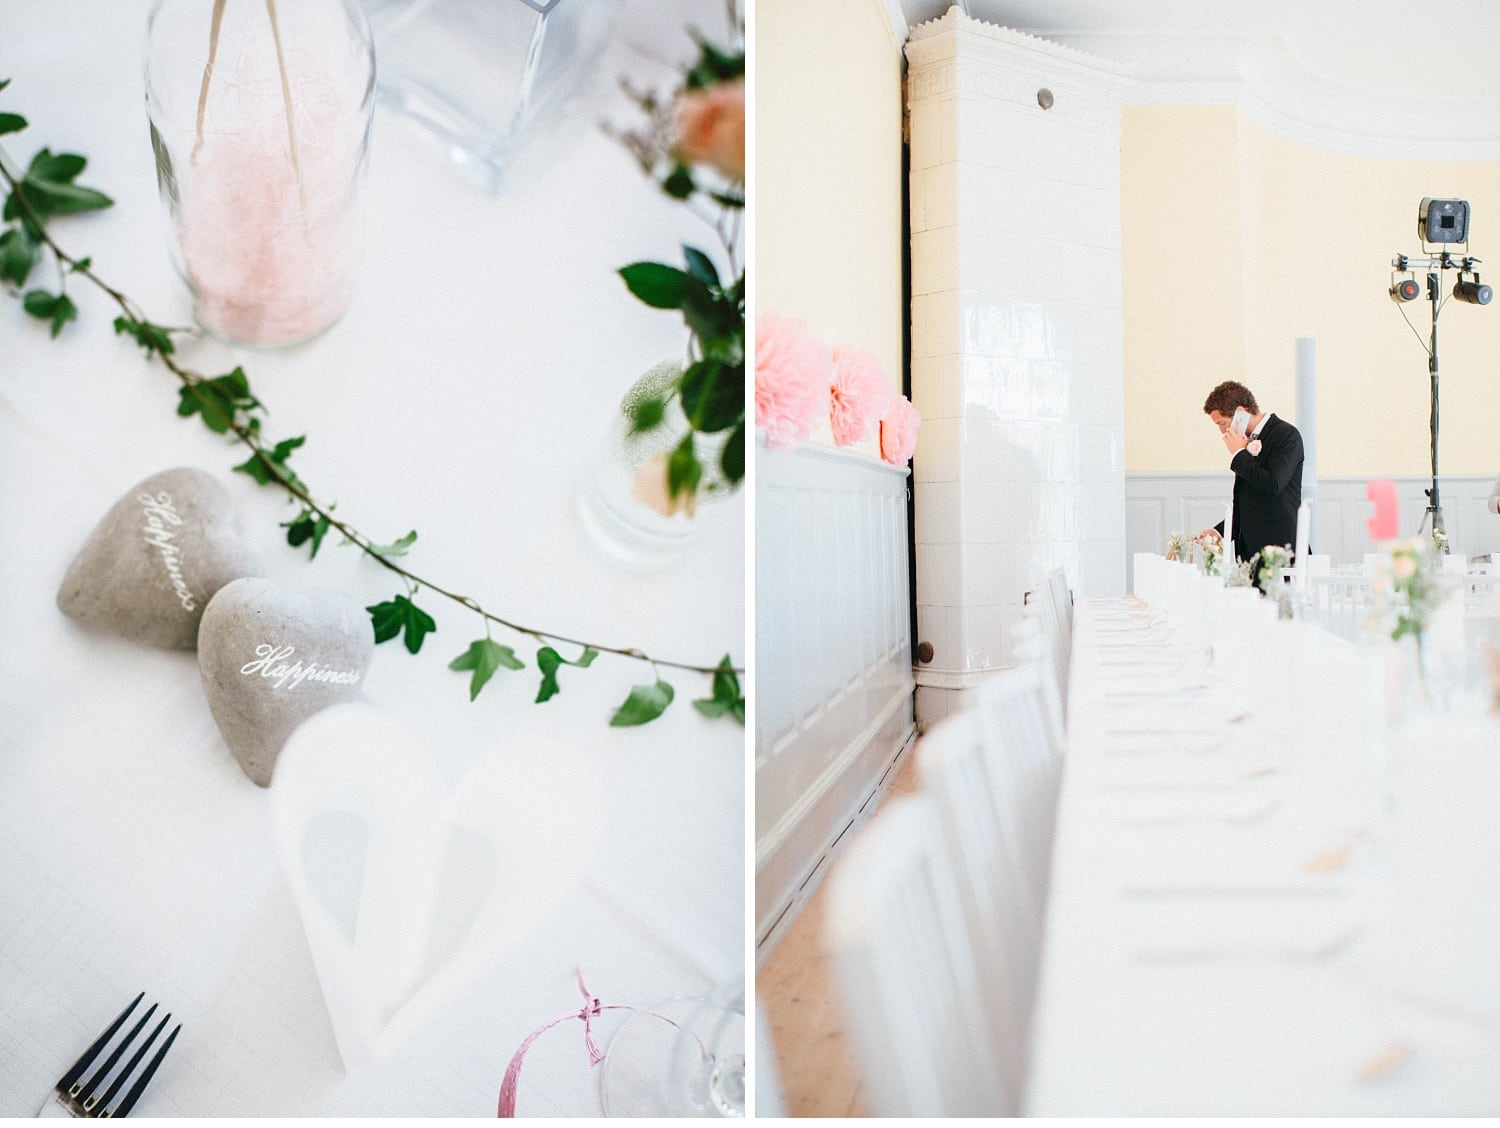 lisa kristoffer brollop uppsala wedding 11 - Lisa & Kristoffer wedding